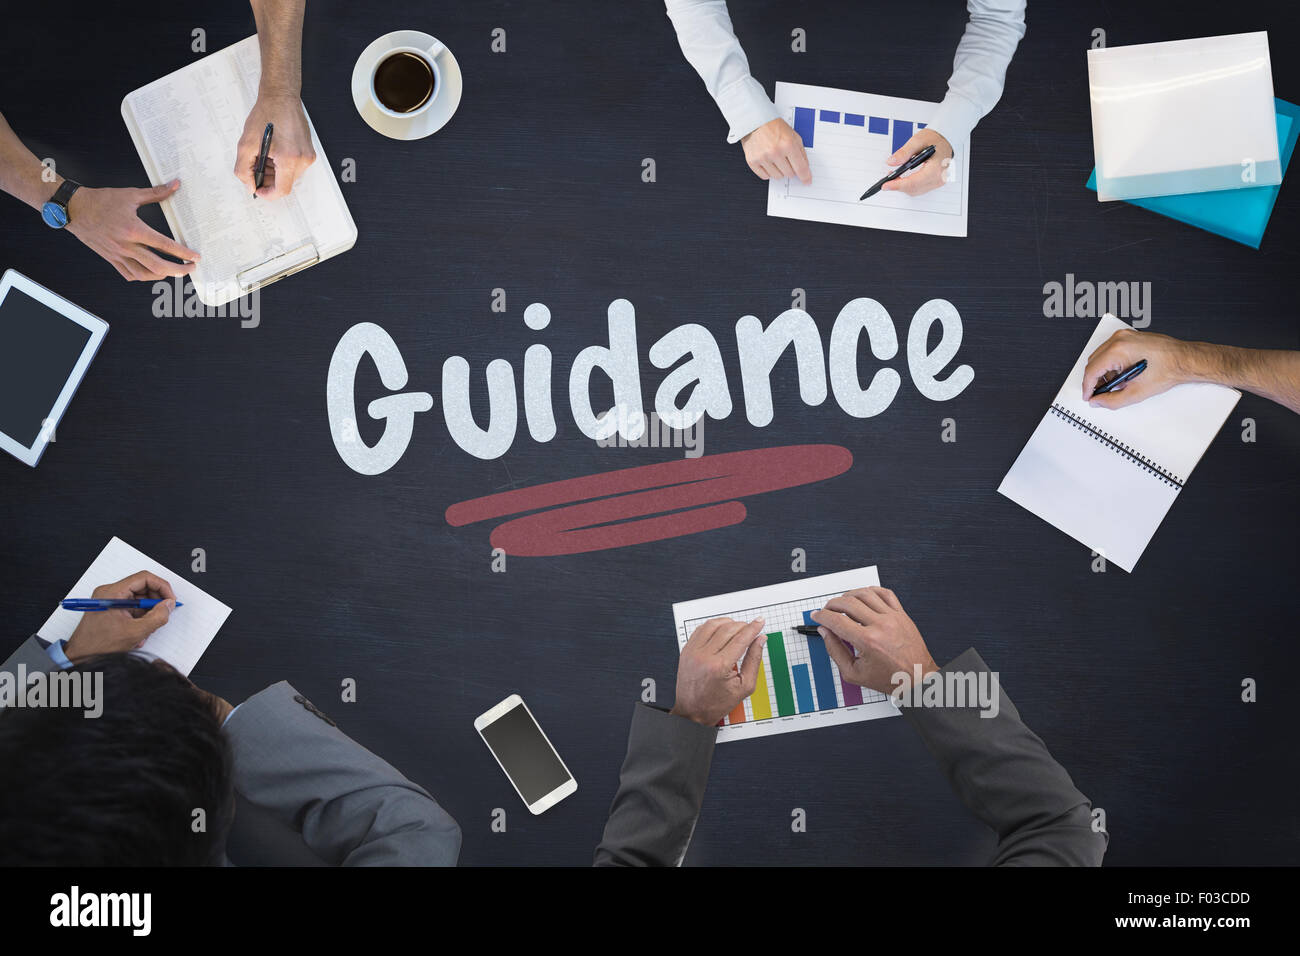 Guidance against blackboard - Stock Image